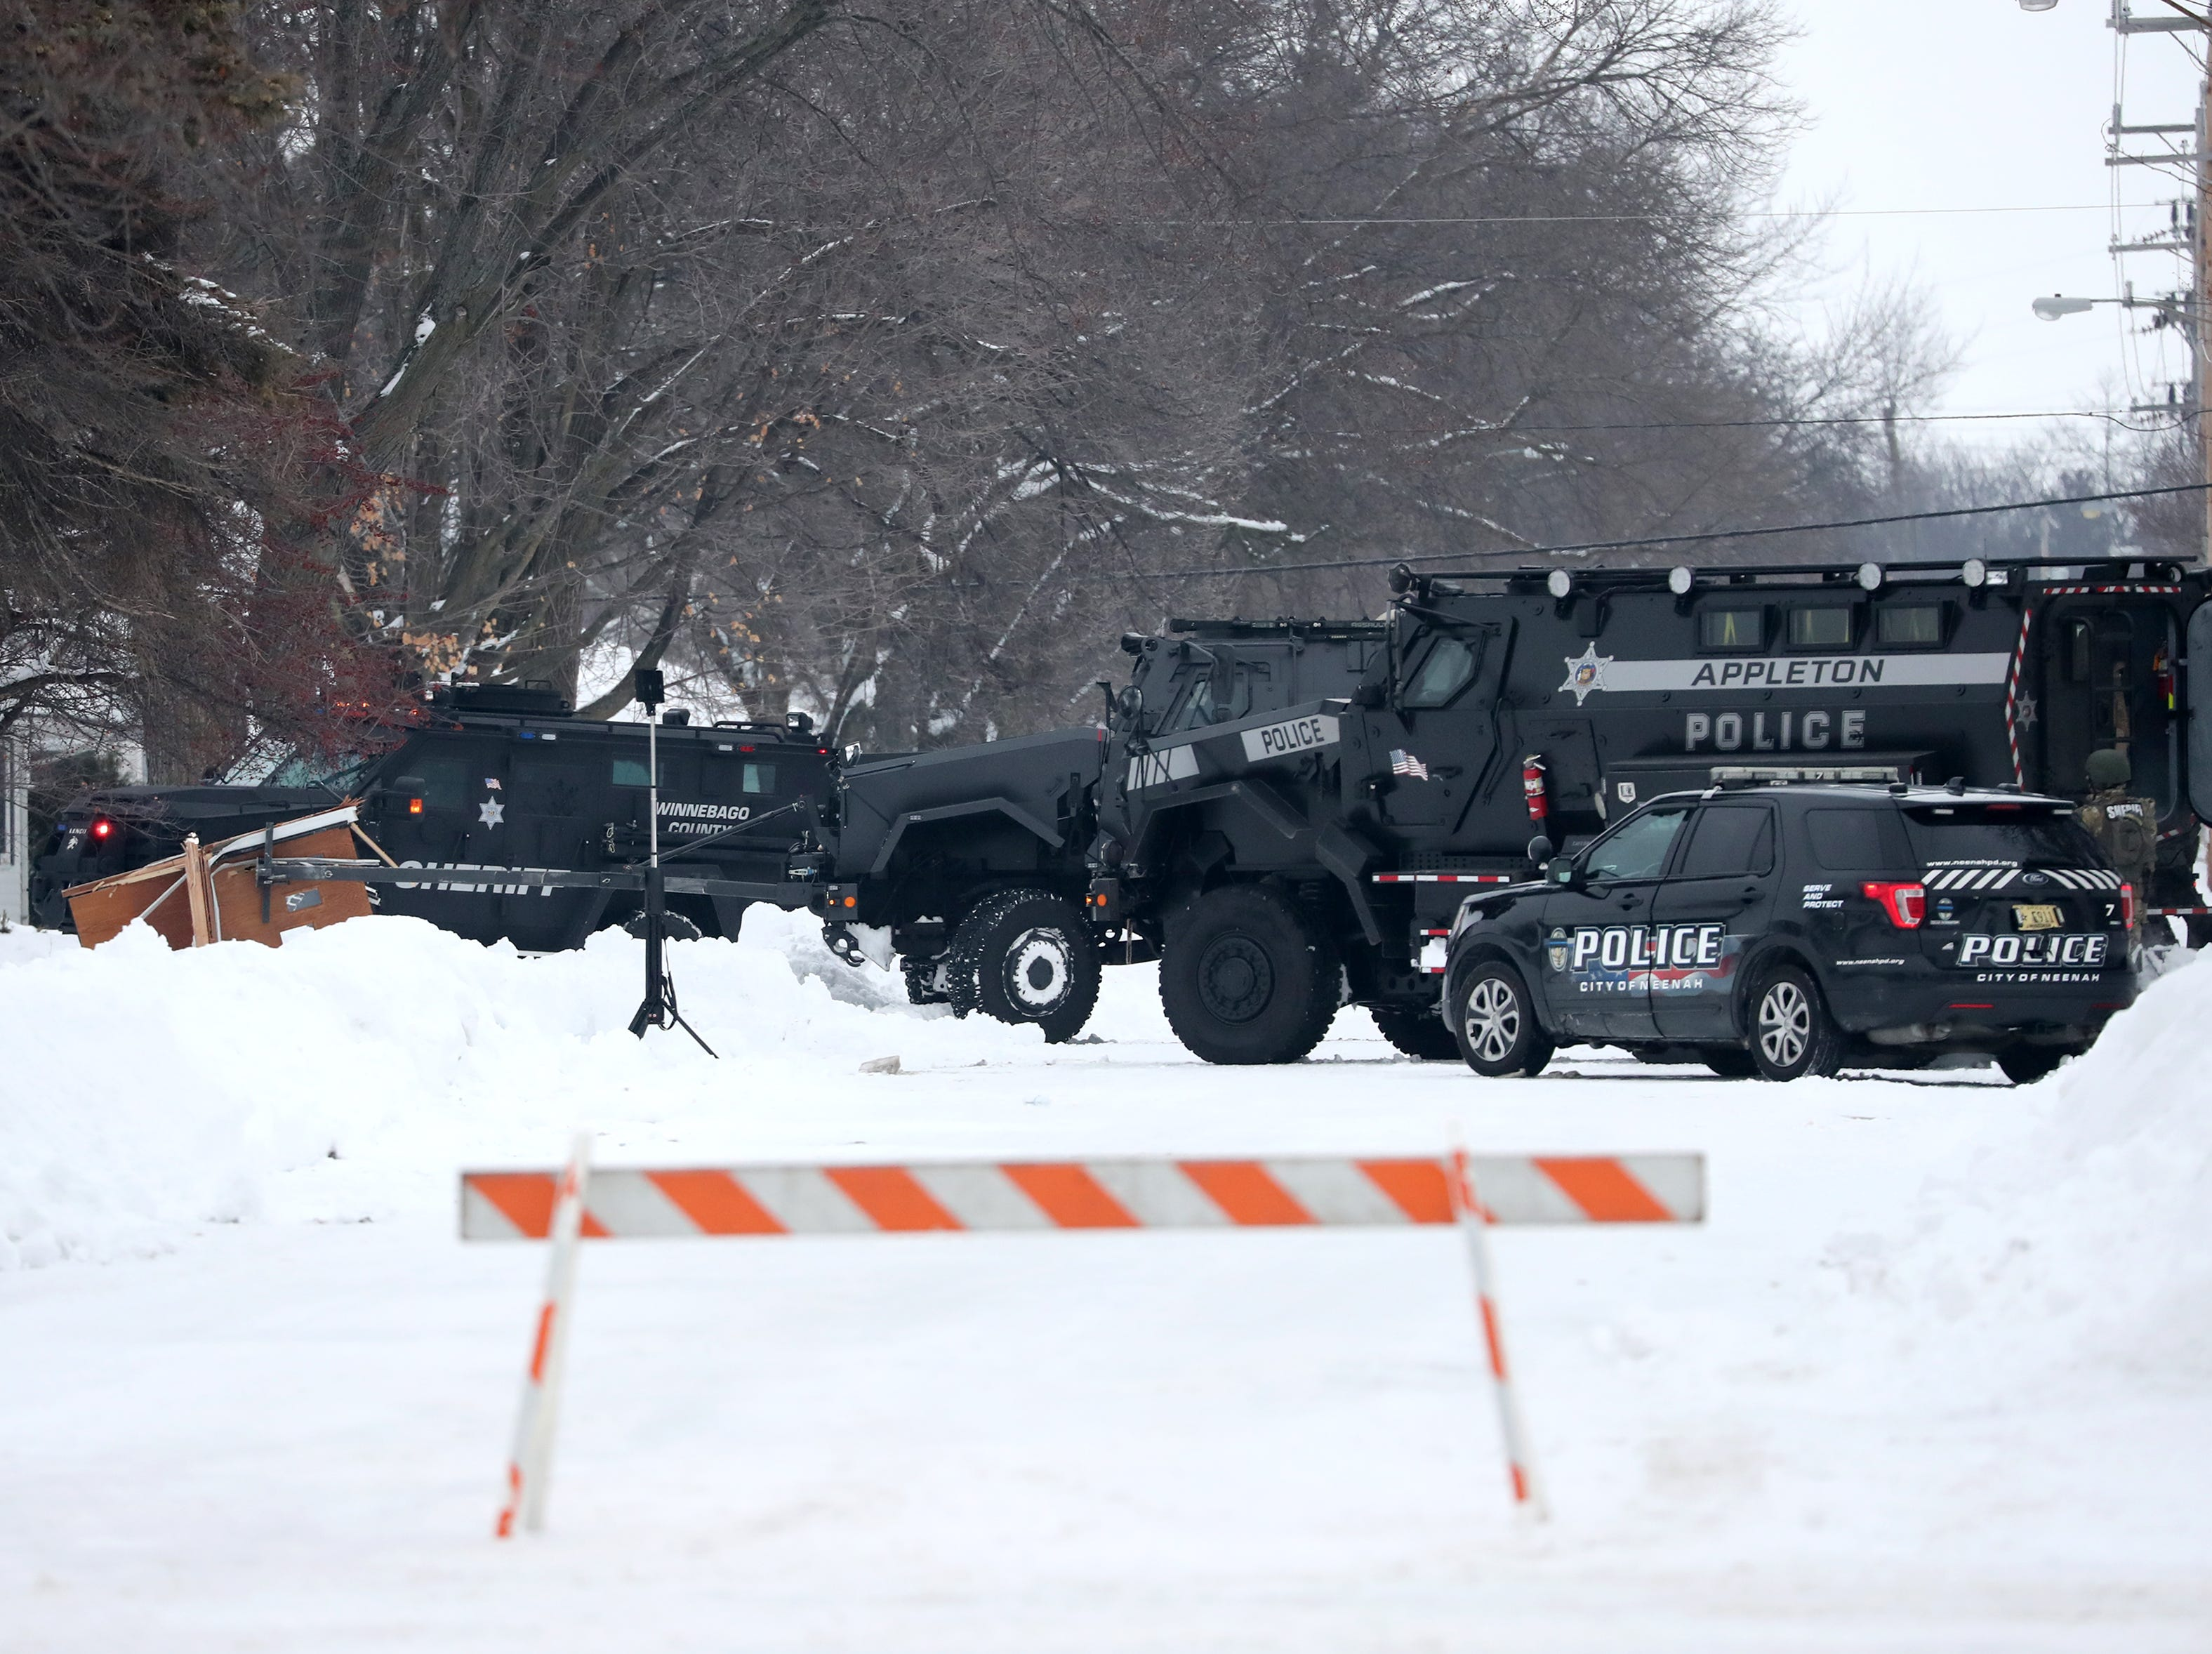 The heavy law enforcement presence during an active police incident on the 400 block of Quarry Lane Thursday, Feb. 14, 2019, in Neenah, Wis.Danny Damiani/USA TODAY NETWORK-Wisconsin